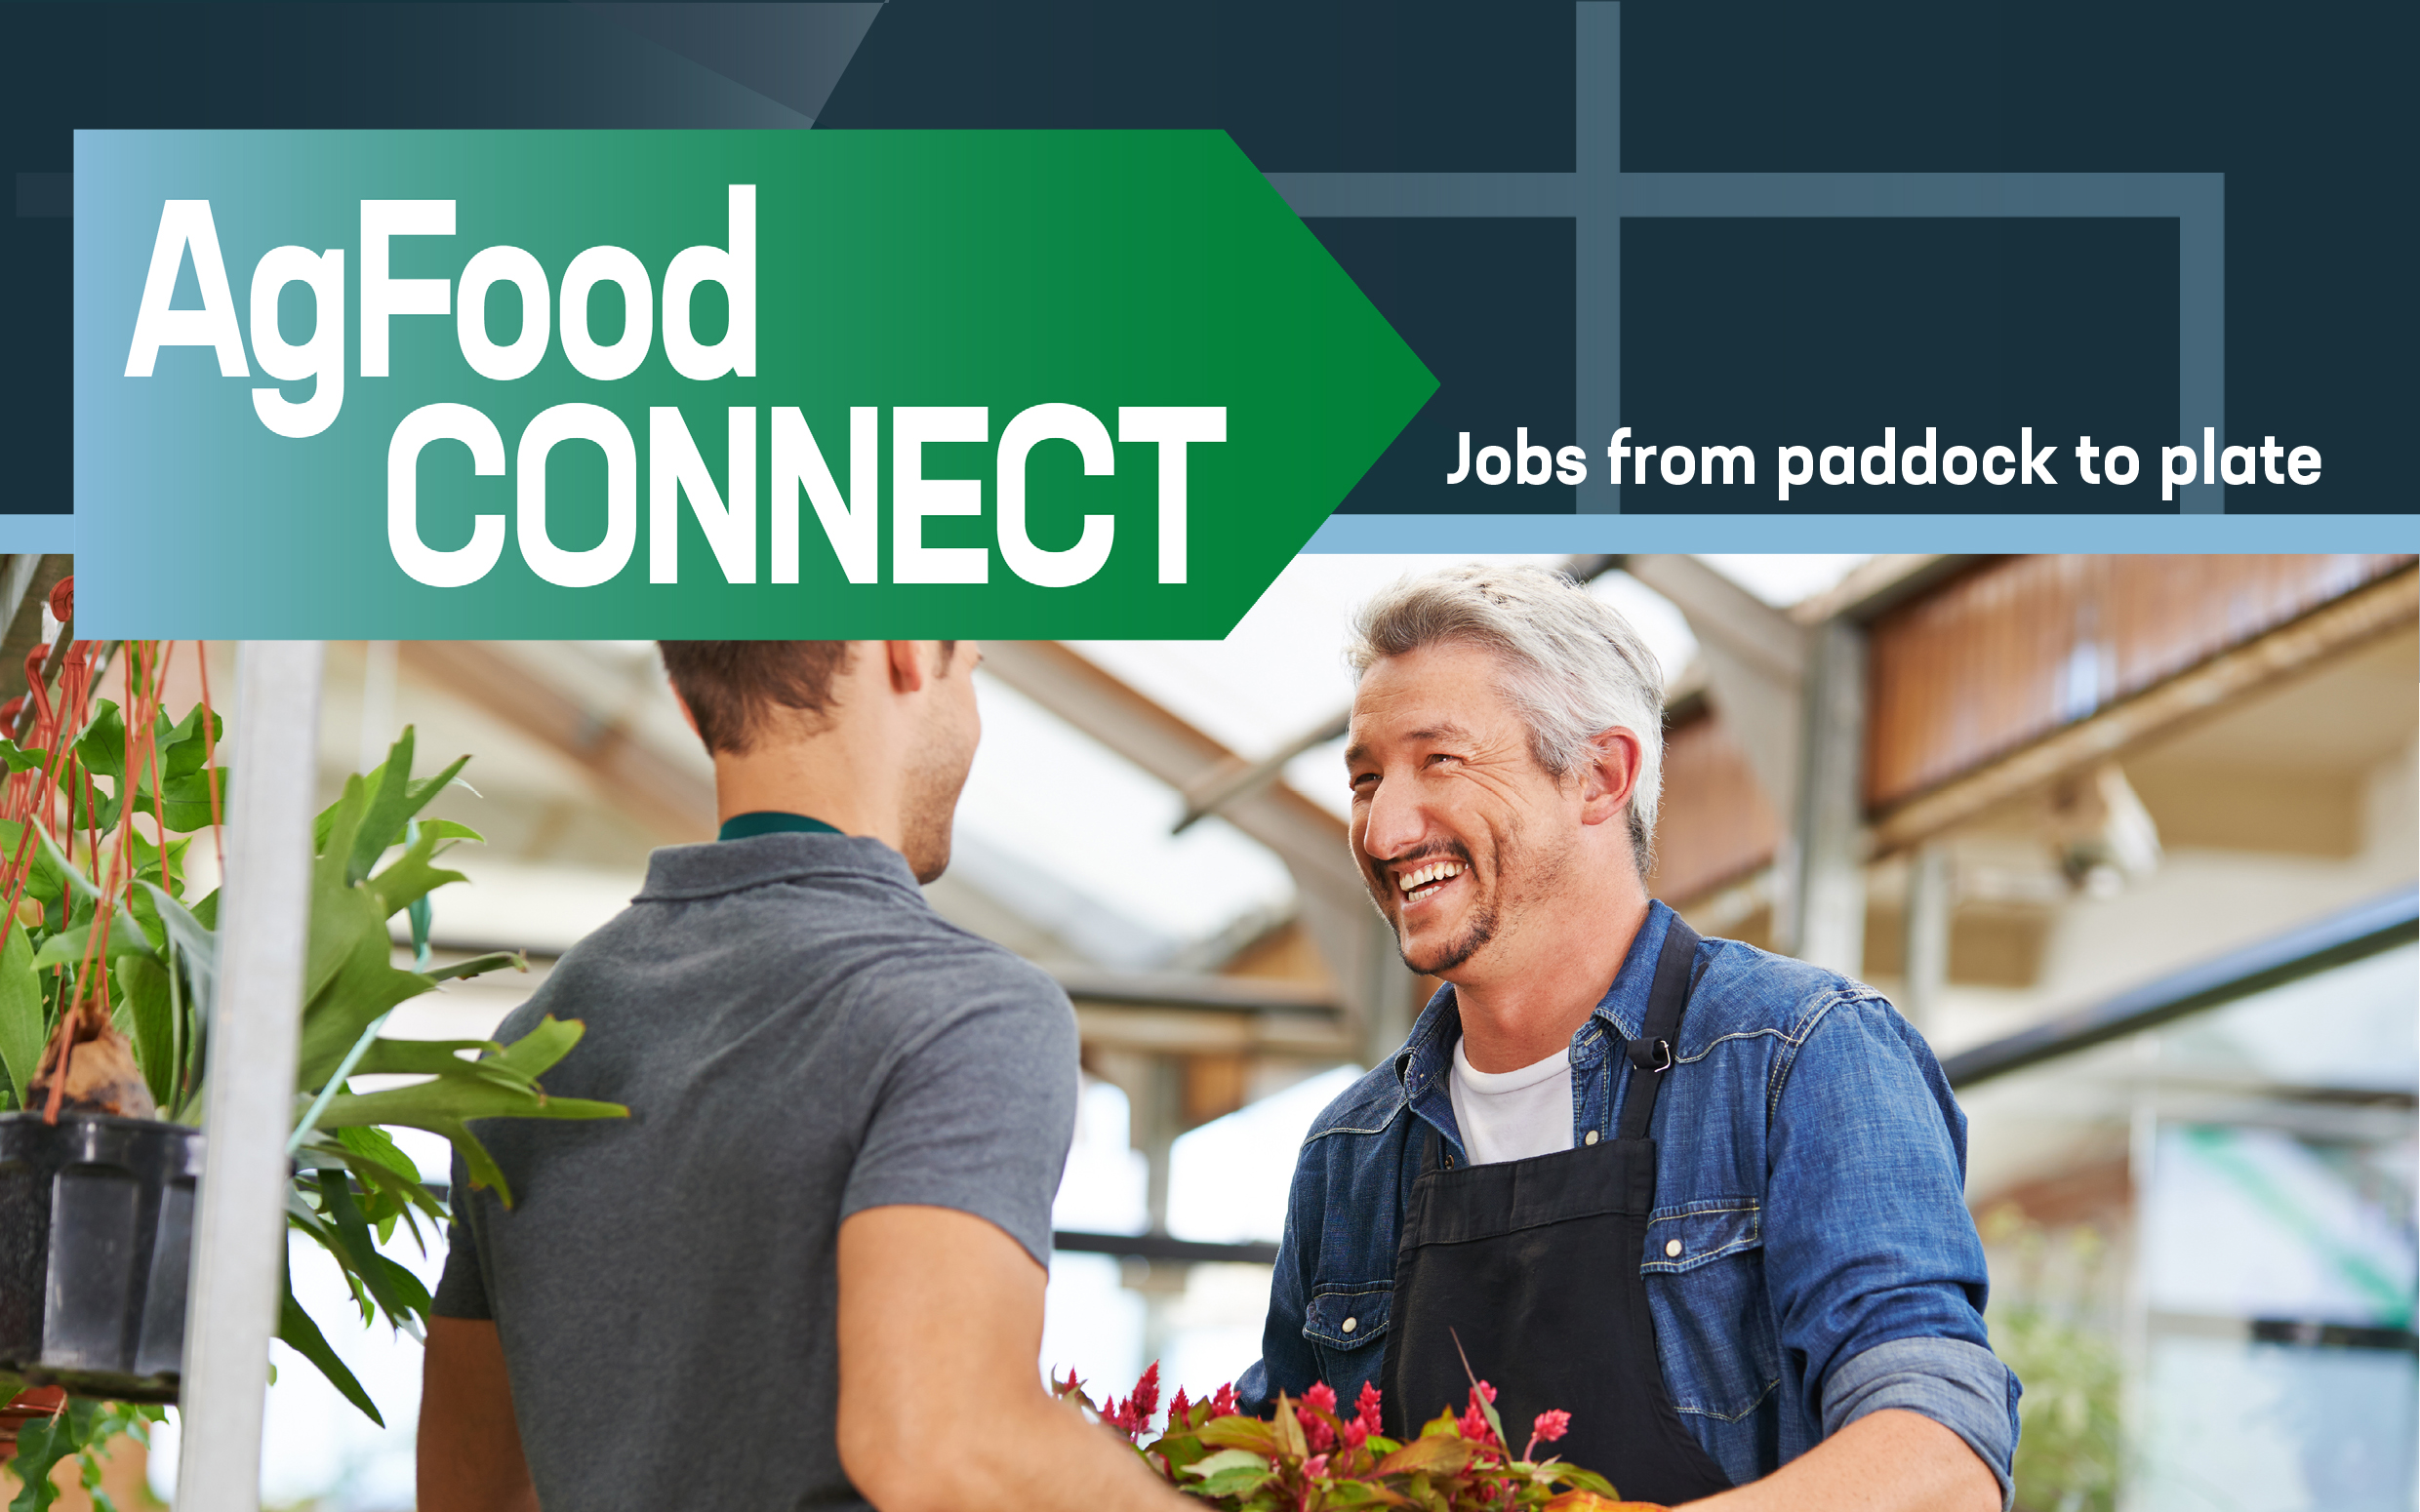 AgFood Connect Program